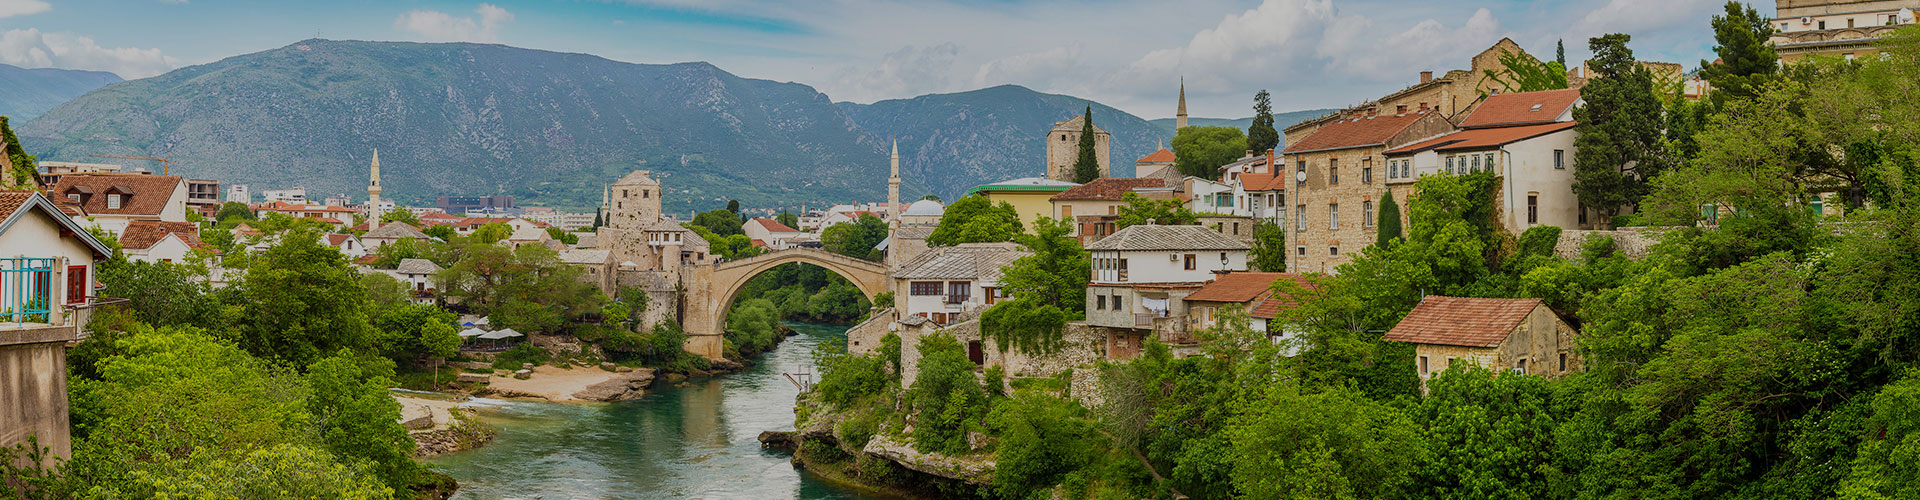 Landmark photograph of Bosnia & Herzegovina